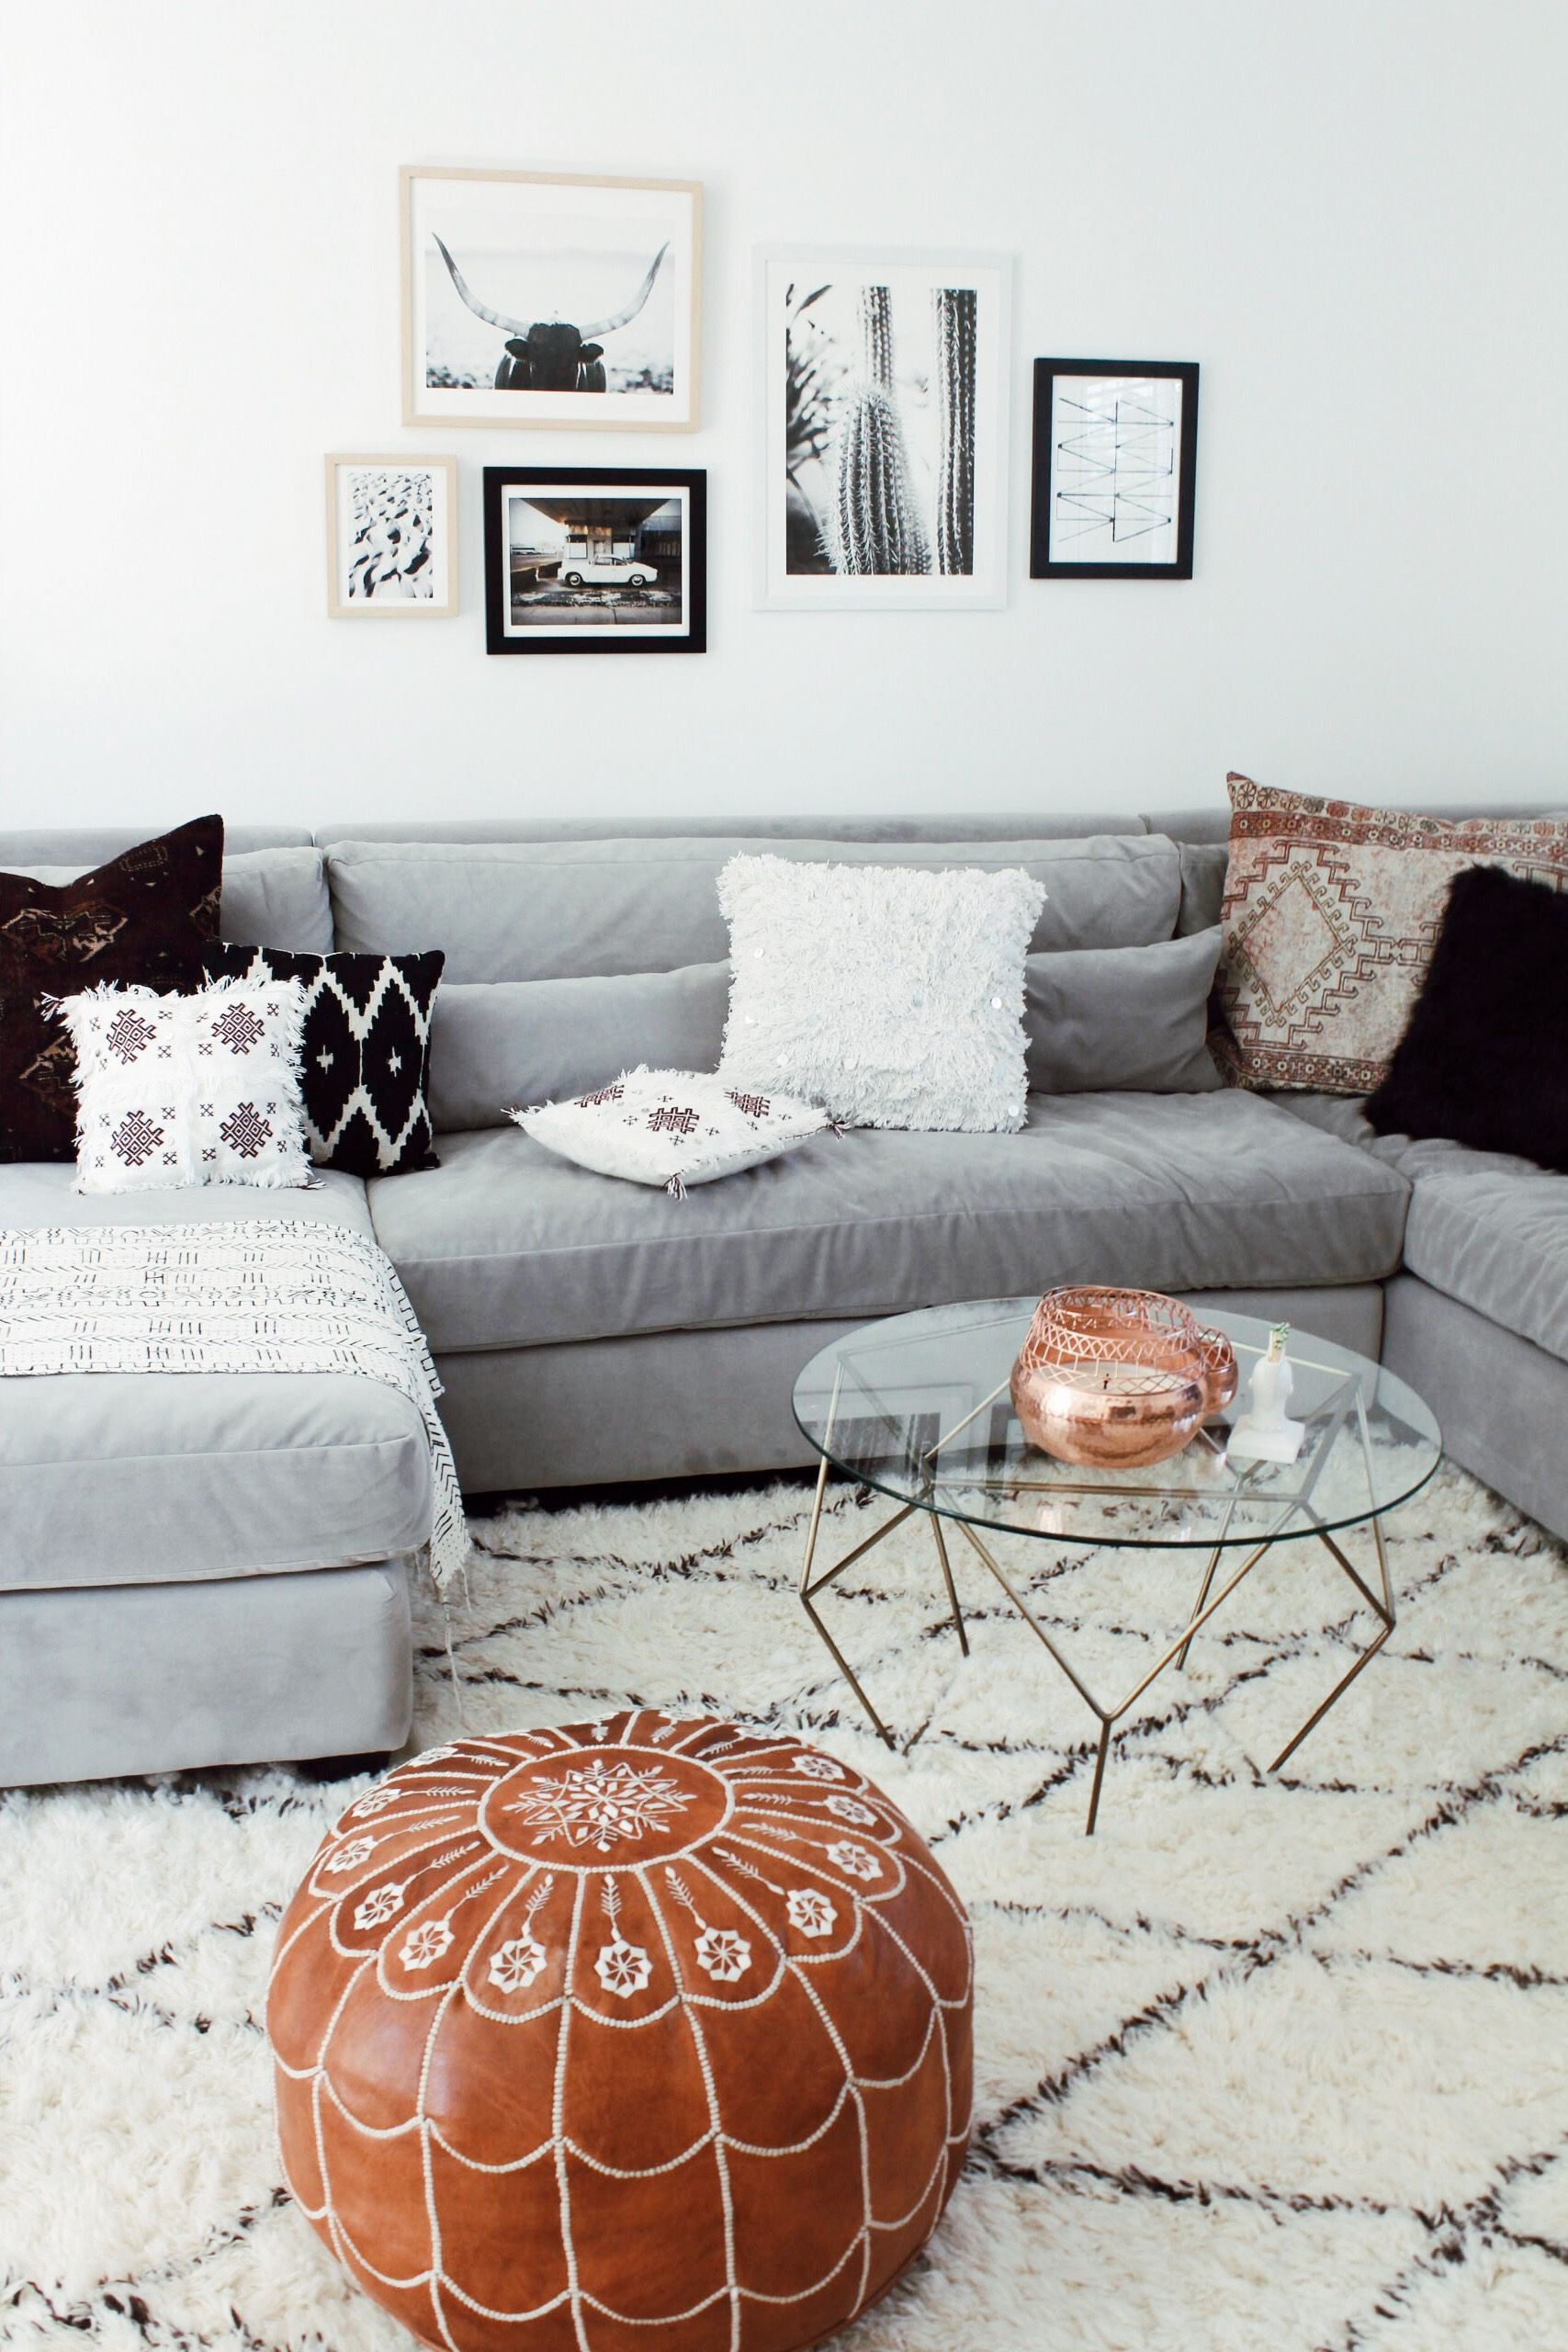 7 tips for hanging a gallery wall rugs in living room